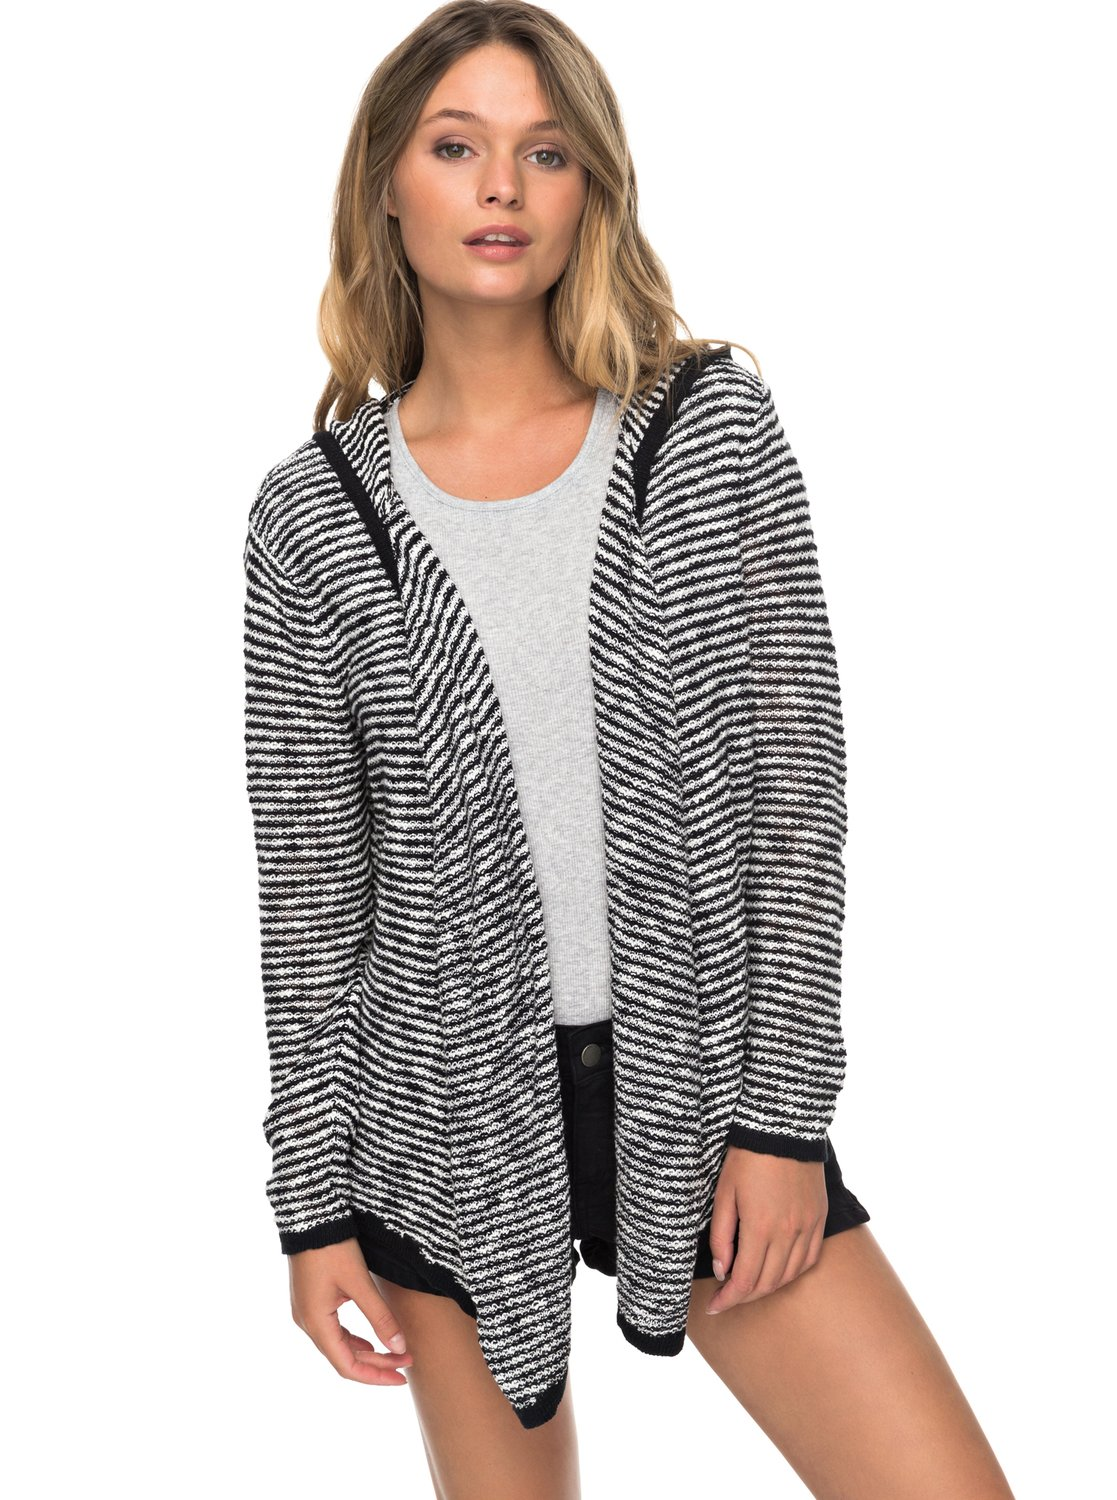 Vermont Escape Stripe Hooded Cardigan ERJSW03256 | Roxy